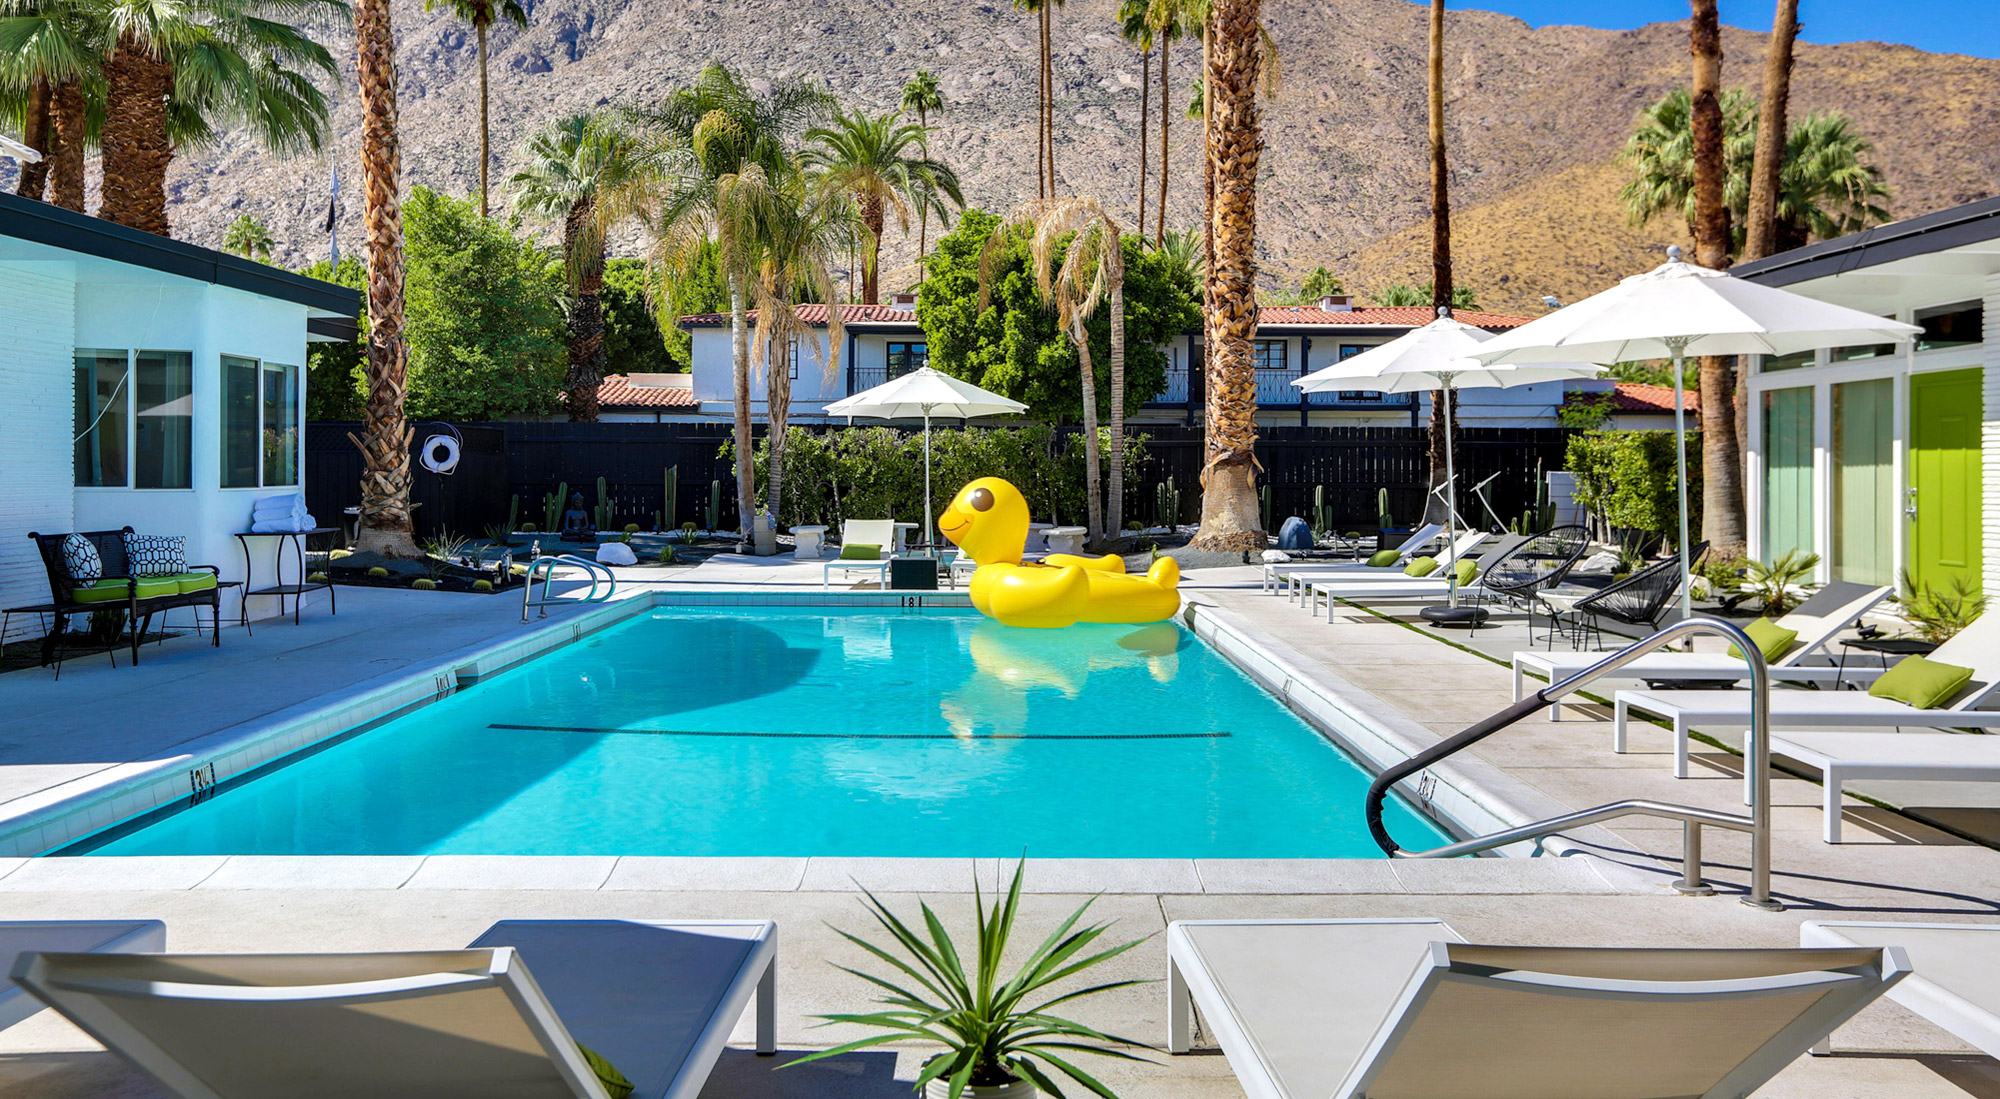 Palm Springs Hotels >> The Three Fifty Hotel Palm Springs The Three Fifty Hotel